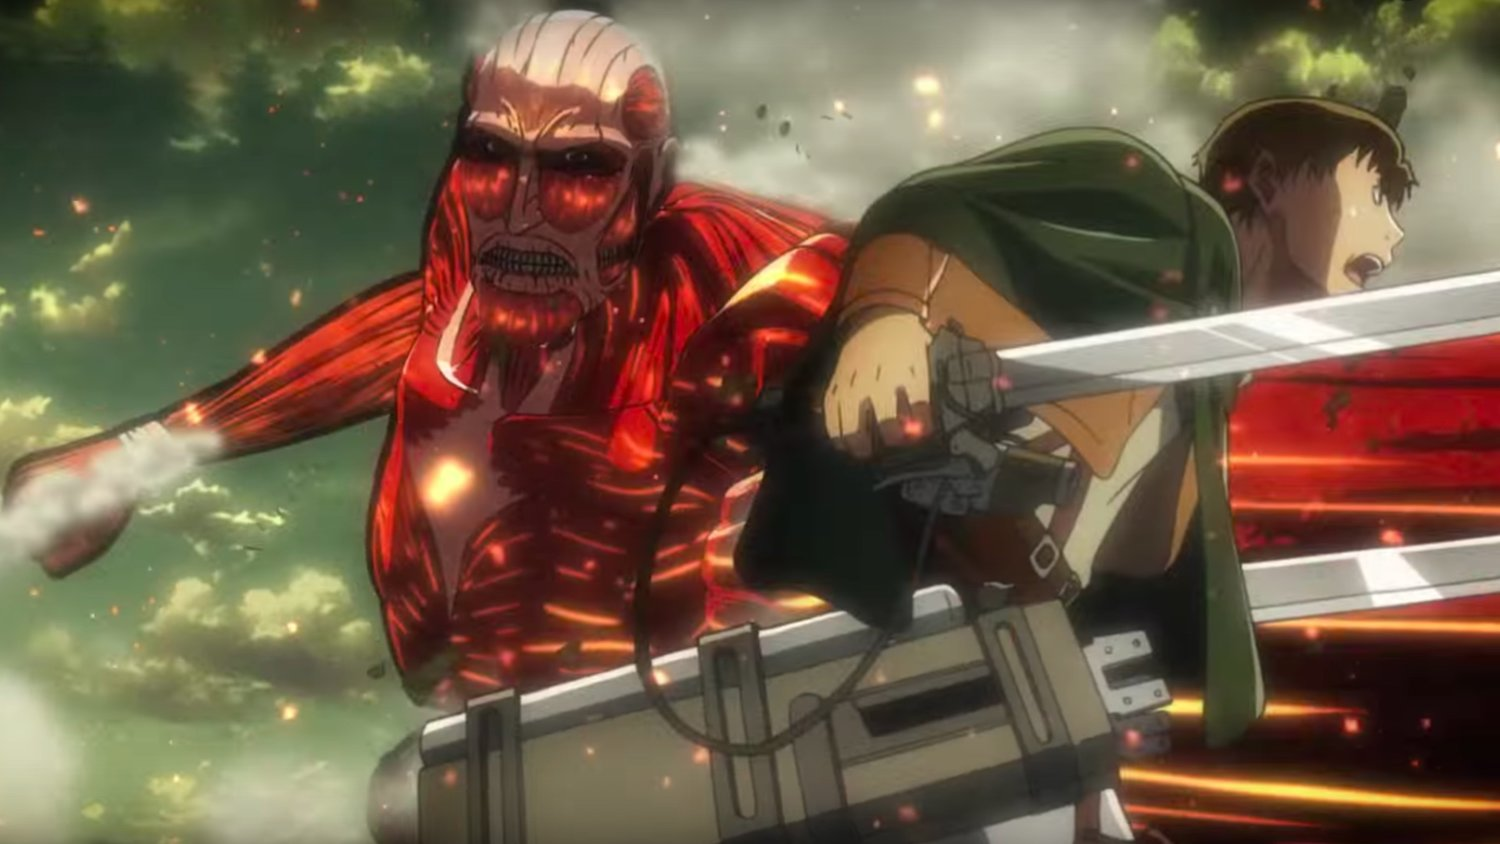 New ATTACK ON TITAN Season 2 Trailer Is an All Out Brutal War of Titans!